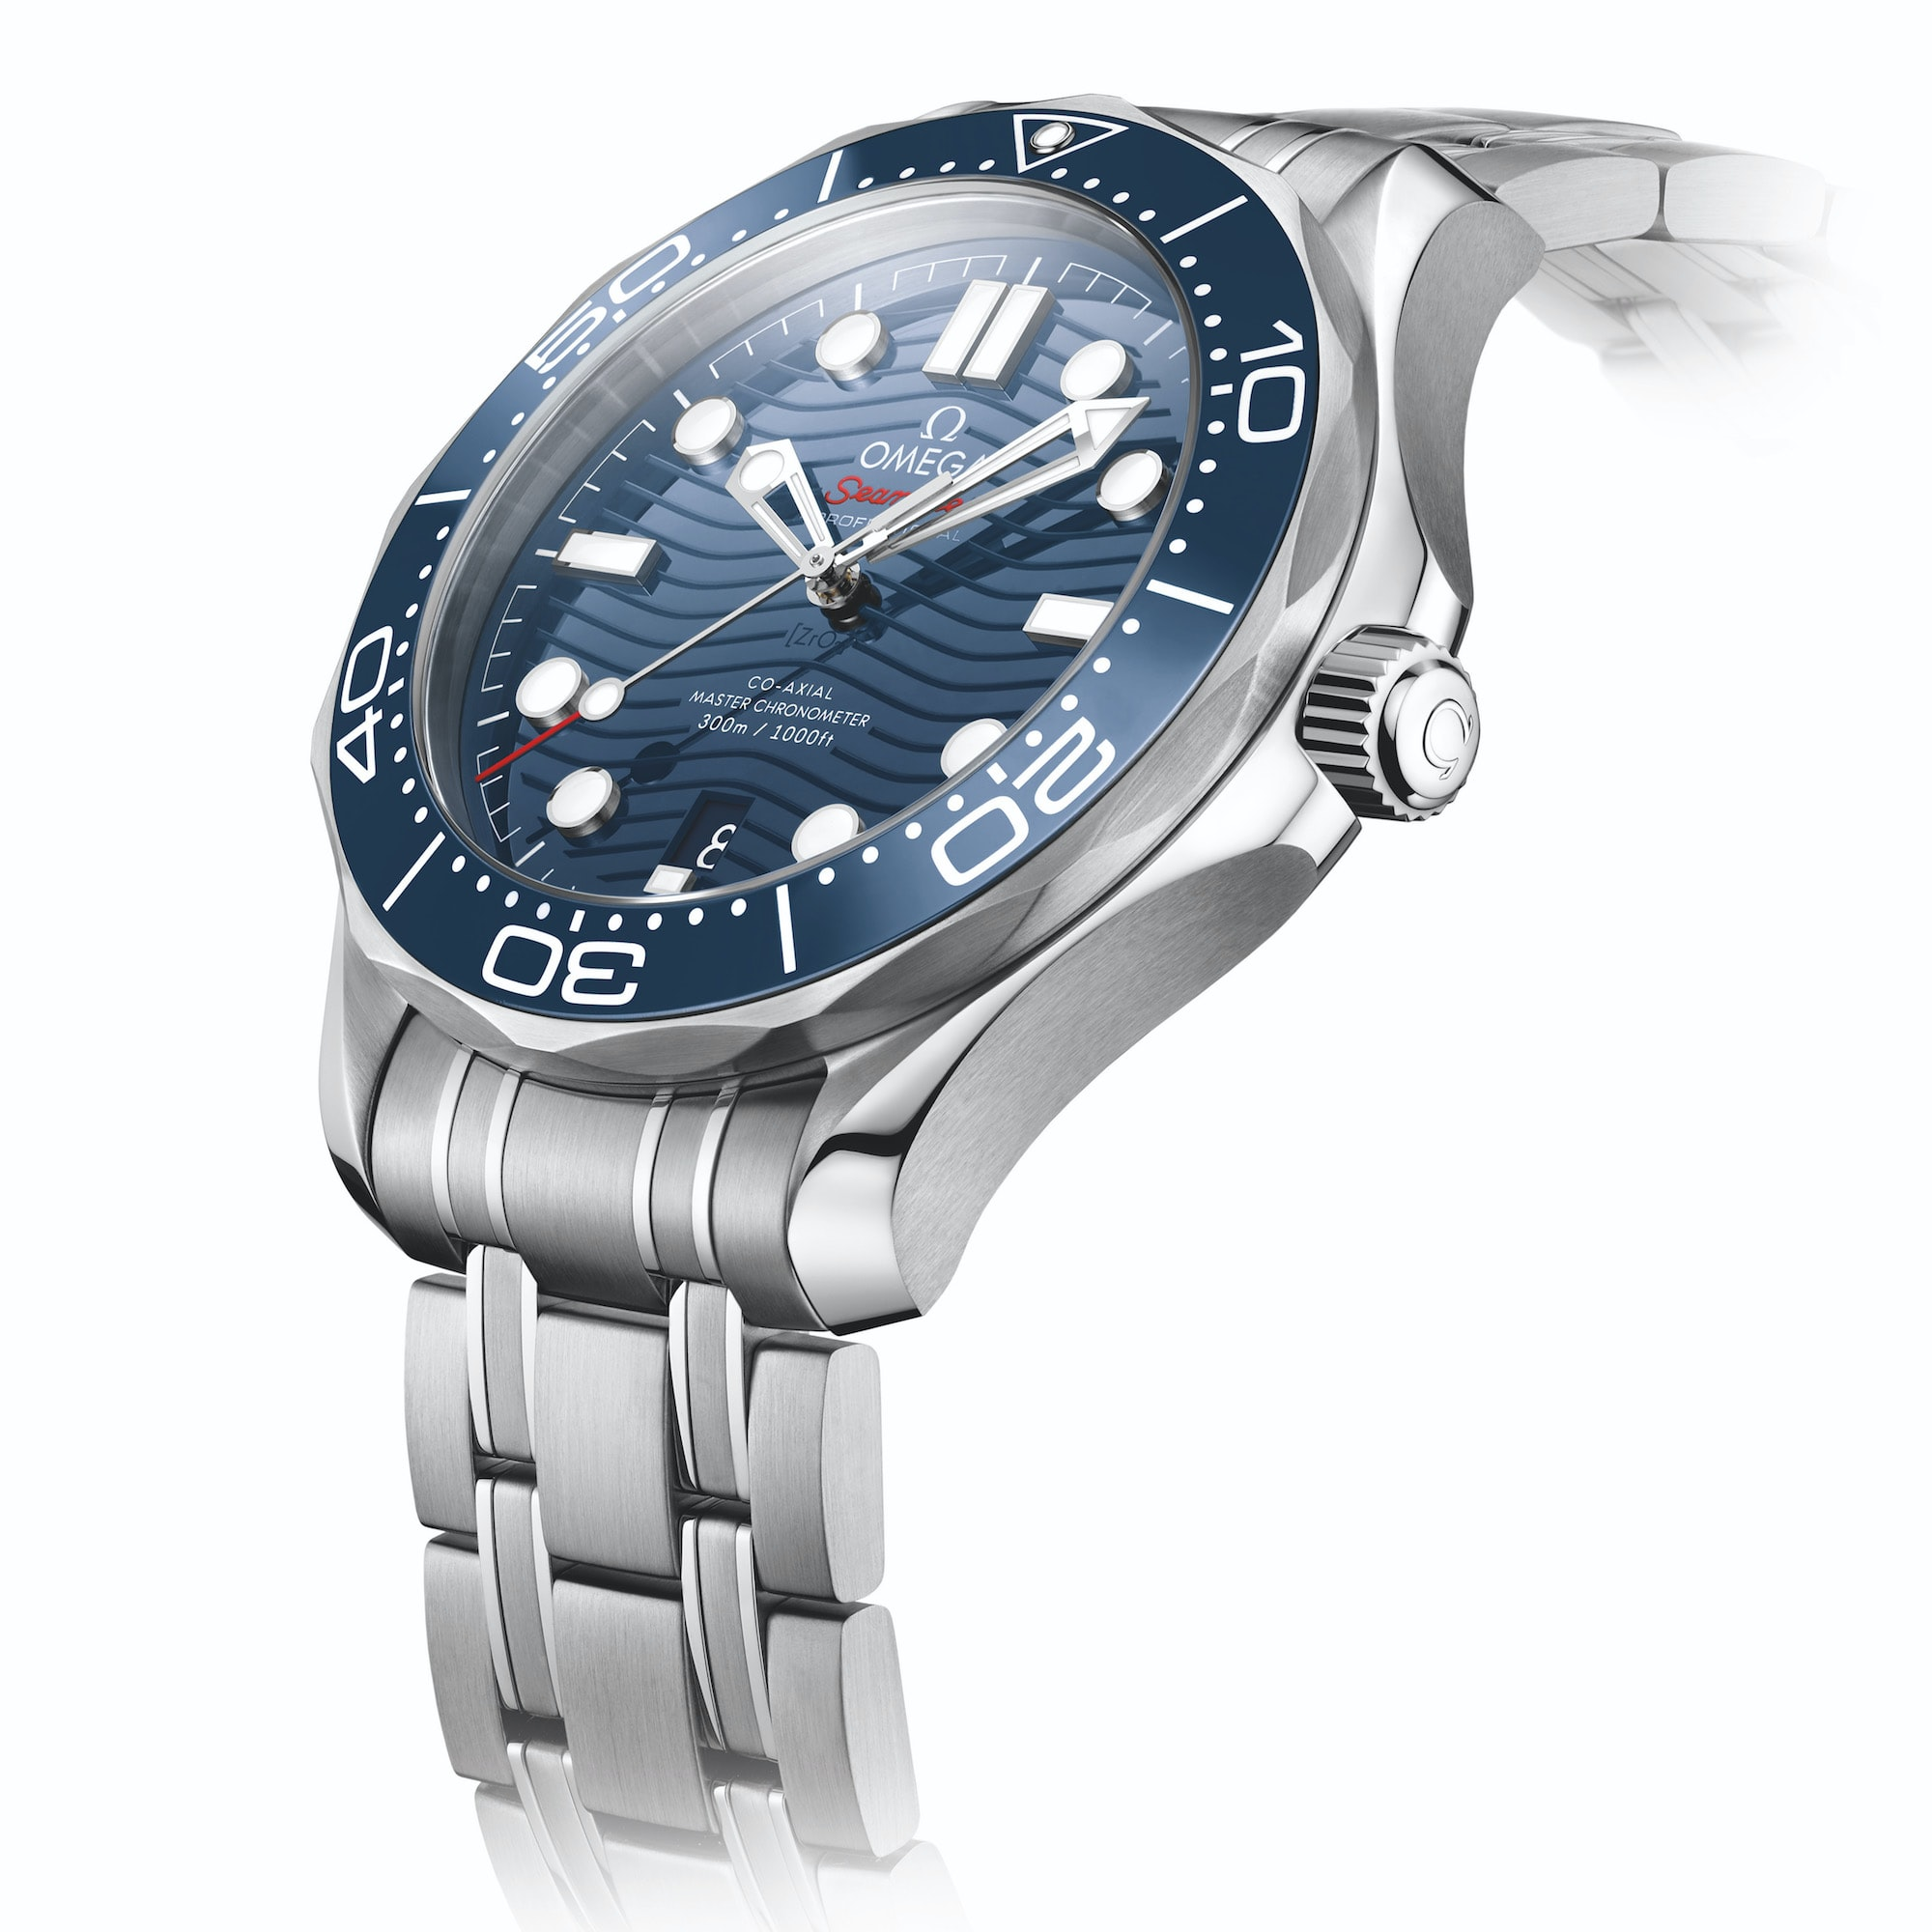 Introducing: The Omega Seamaster Professional Diver 300M ...